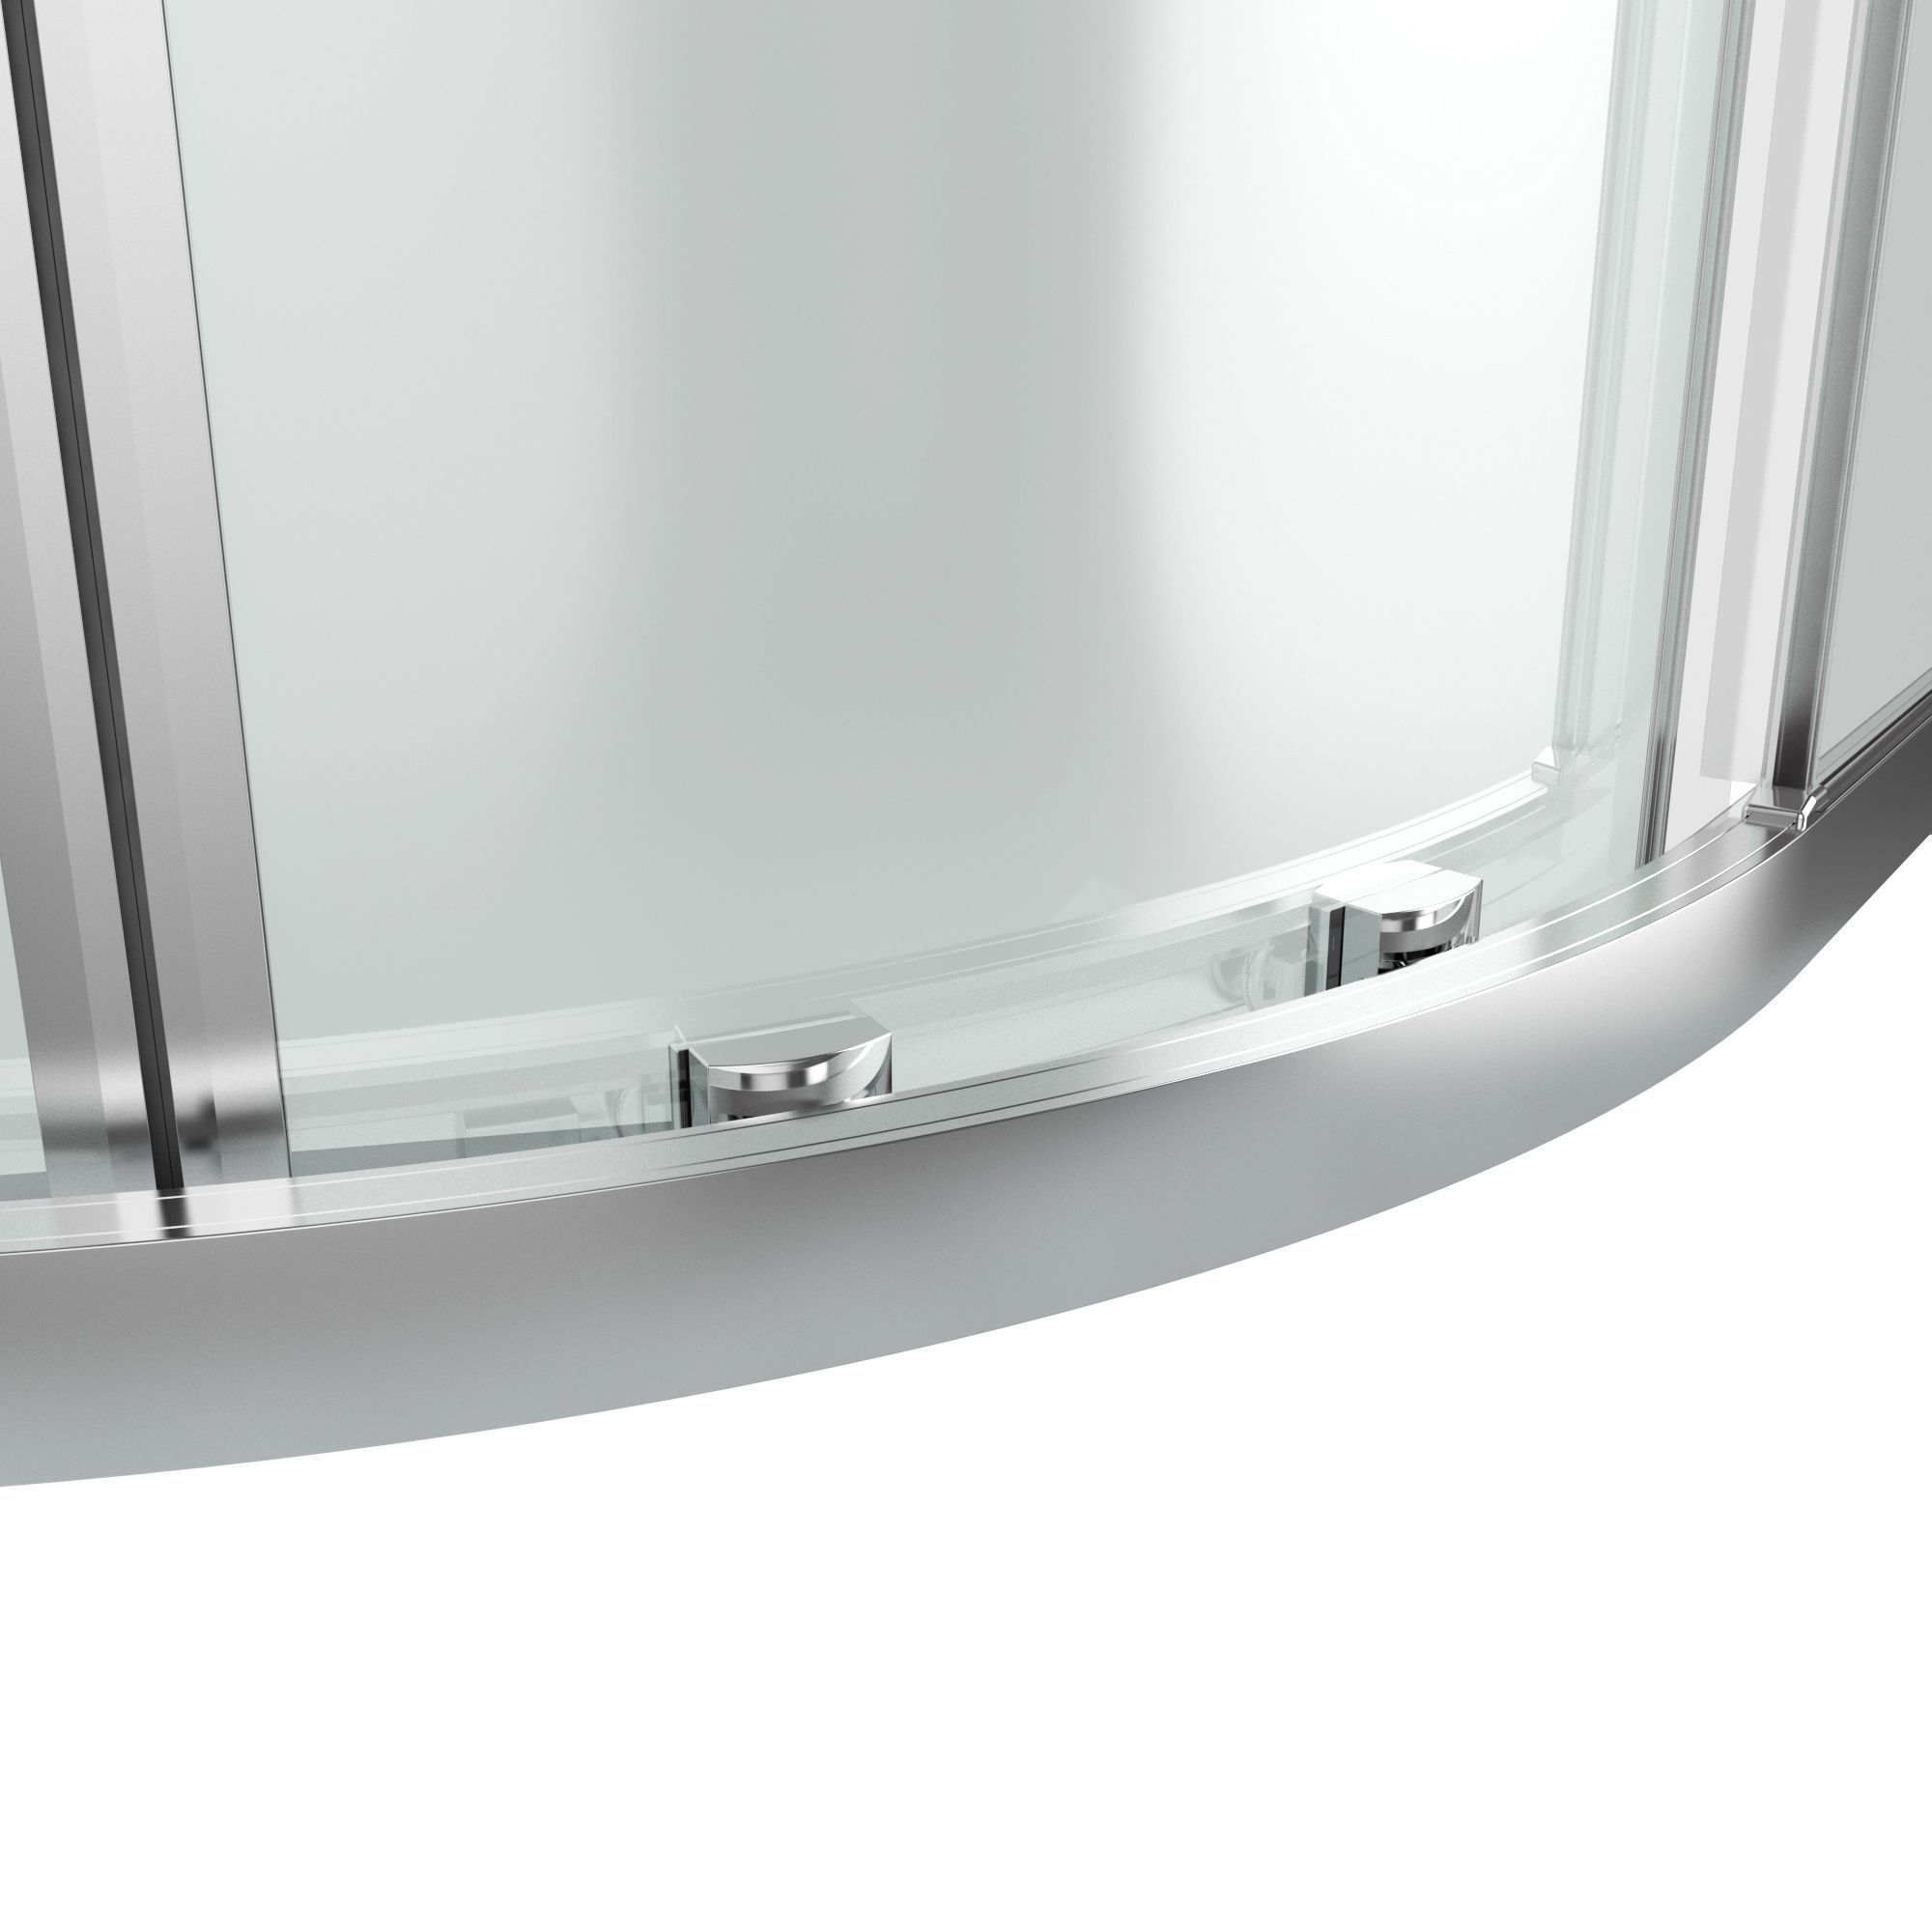 goodhome beloya quadrant clear shower enclosure with corner entry double sliding door w 800mm d 800mm